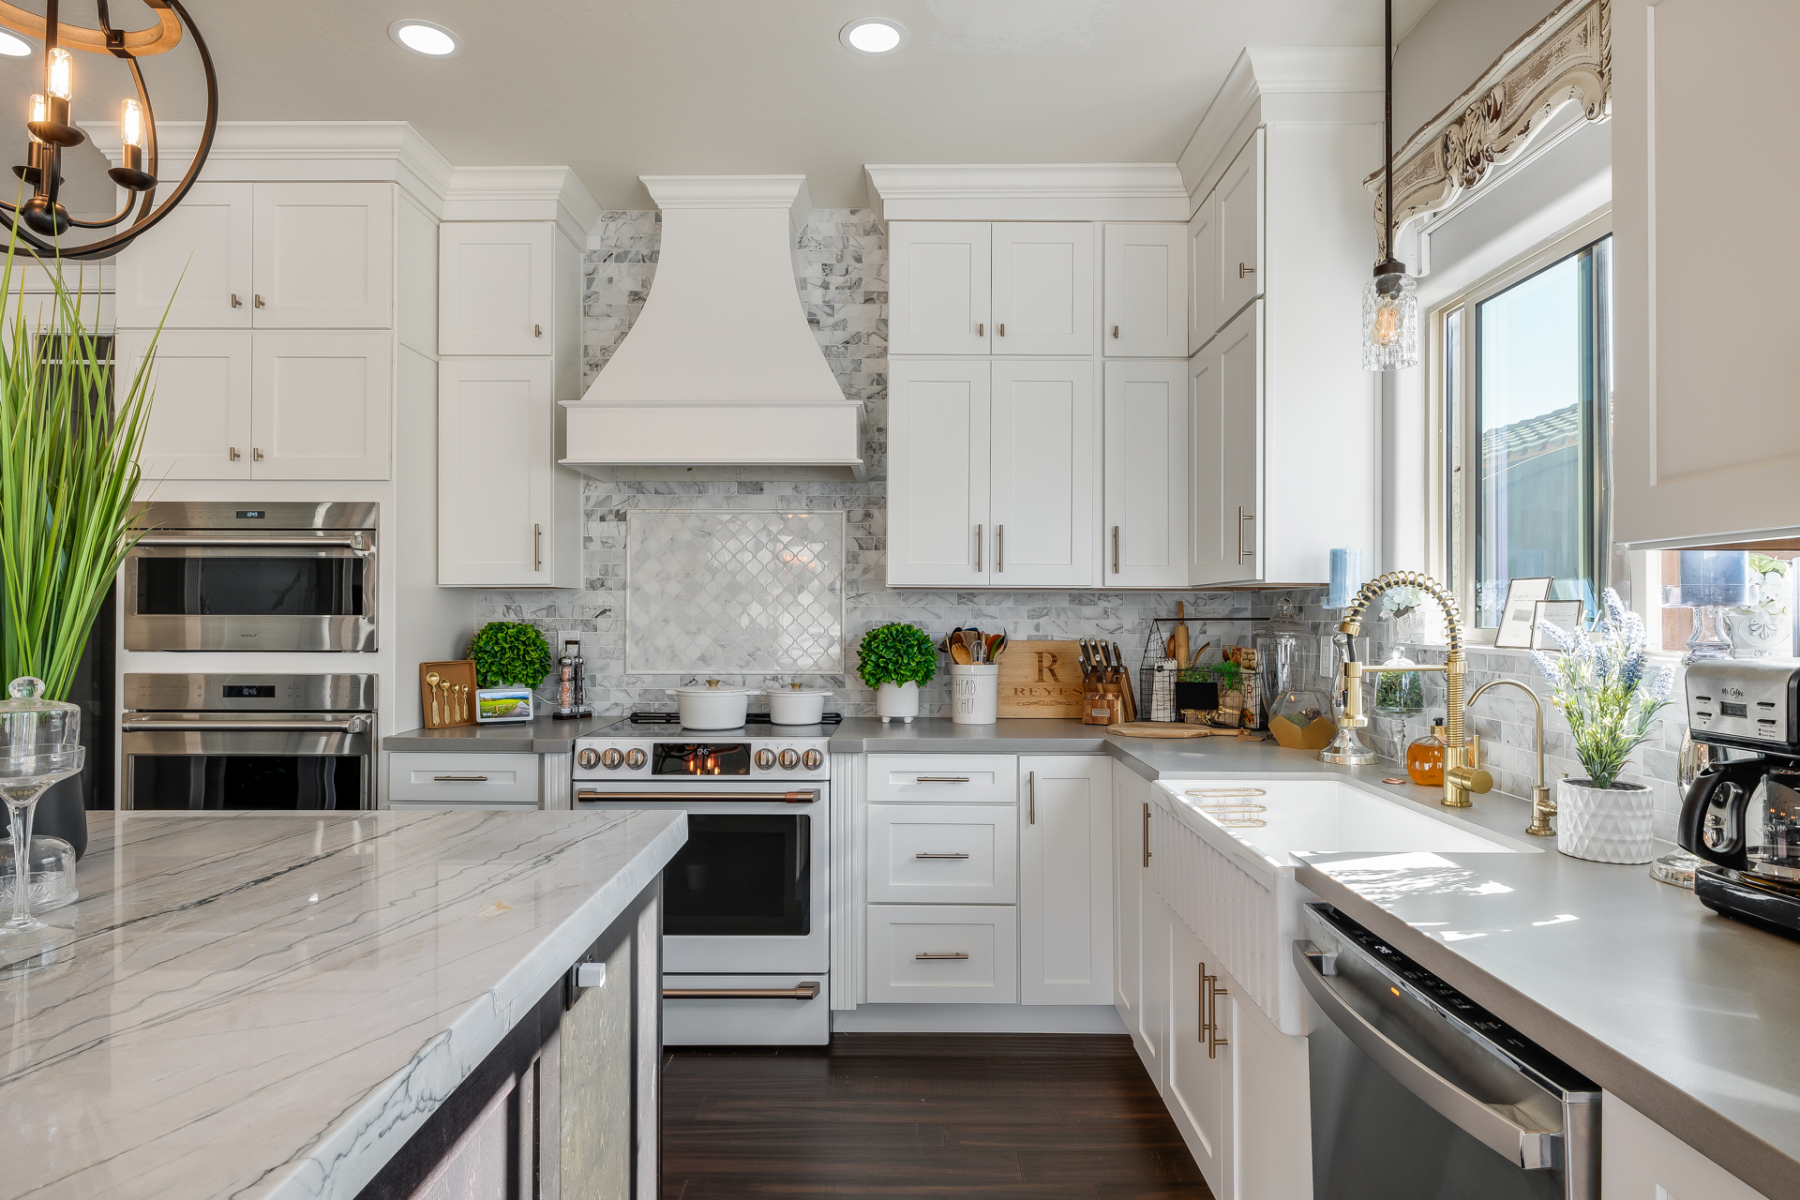 Custom Kitchens, Kitchen Renovations, and Kitchen Remodeling in Scottsdale, AZ for your home